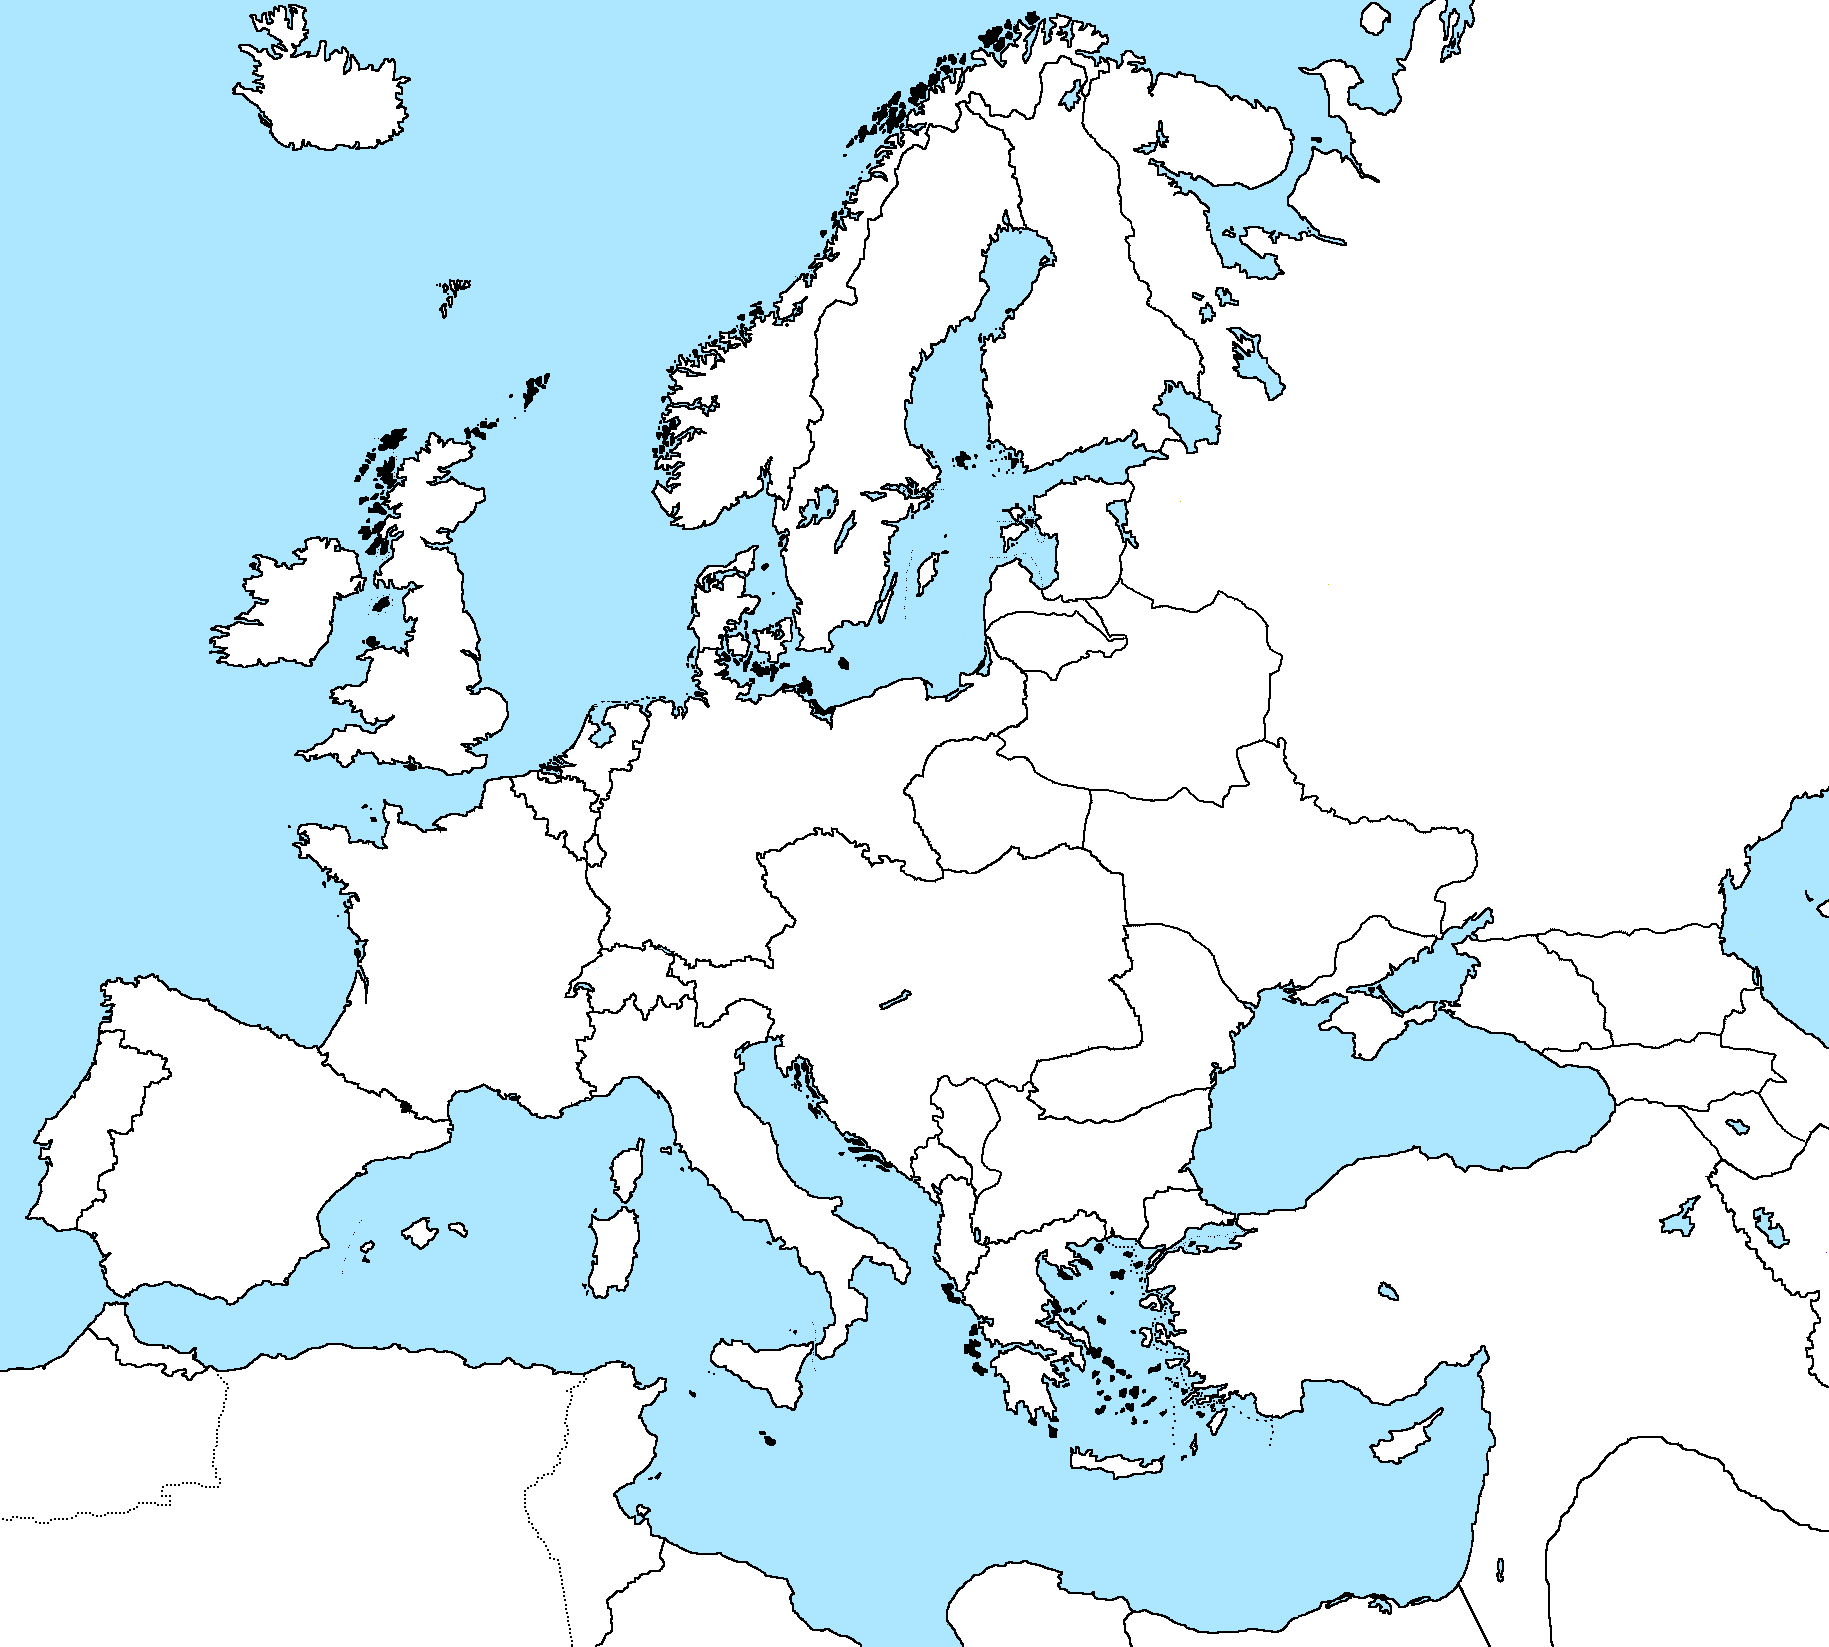 europe in 1918 blank map Blank Map of Europe 1918 by xGeograd on DeviantArt